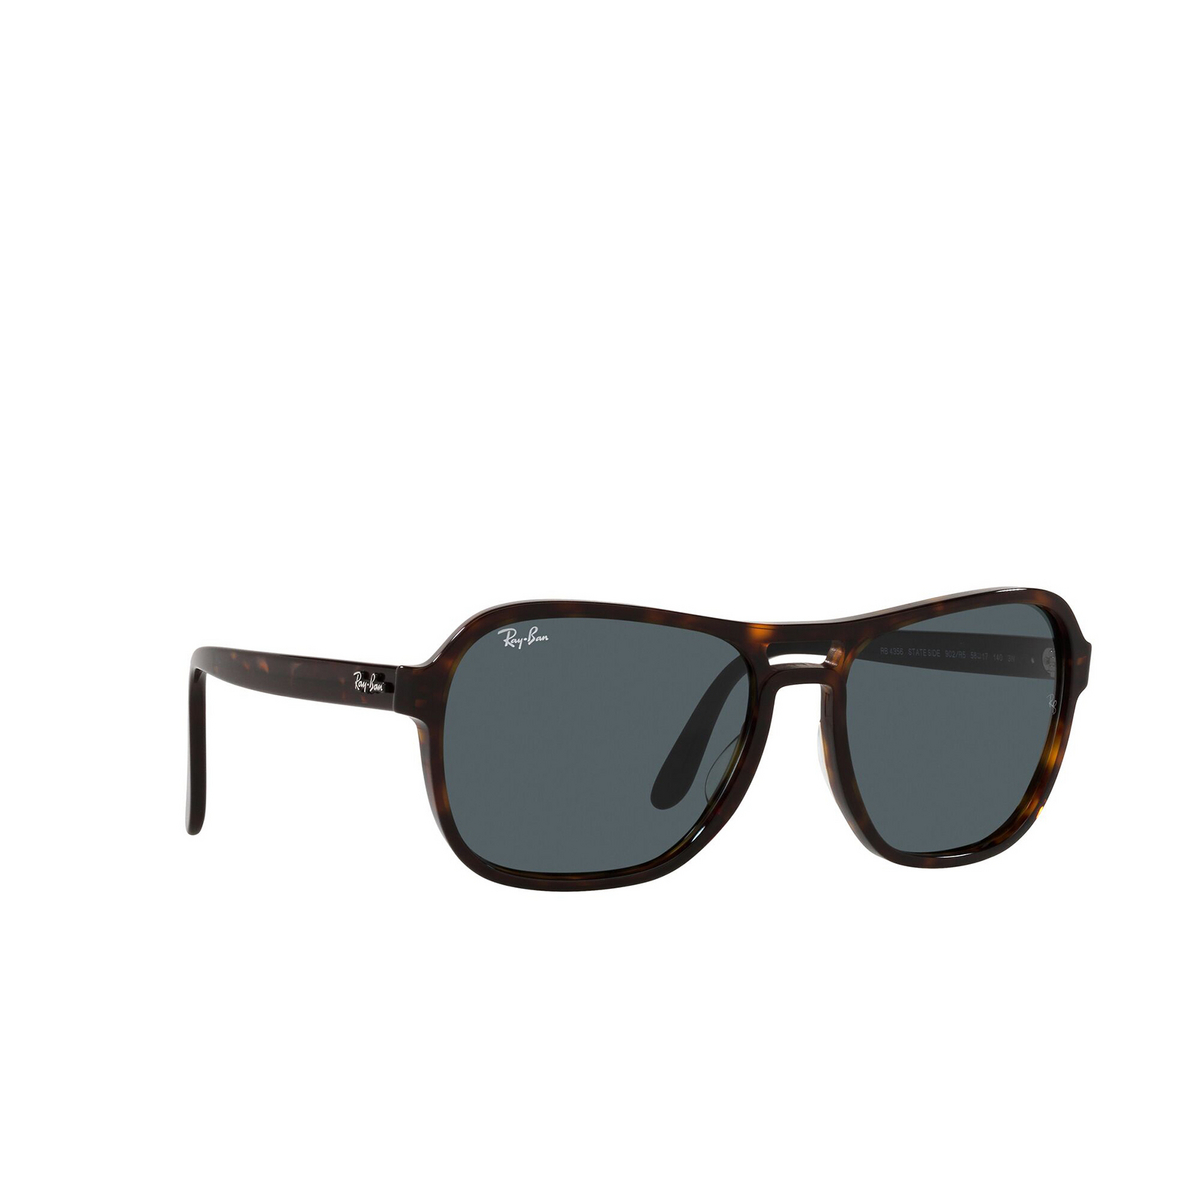 Ray-Ban® Square Sunglasses: State Side RB4356 color Havana 902/R5 - three-quarters view.